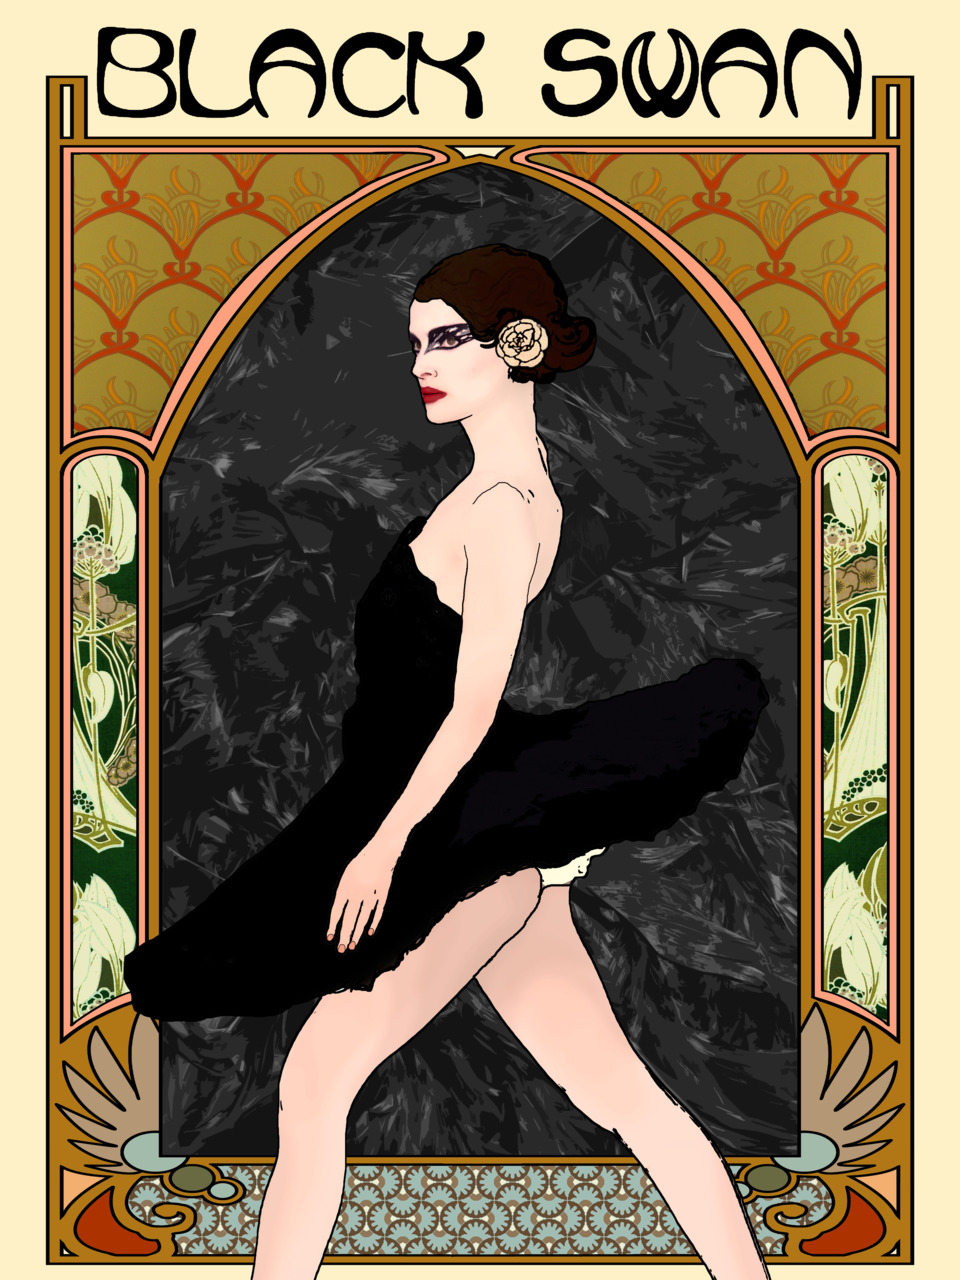 affiches de films style art nouveau. Black Bedroom Furniture Sets. Home Design Ideas